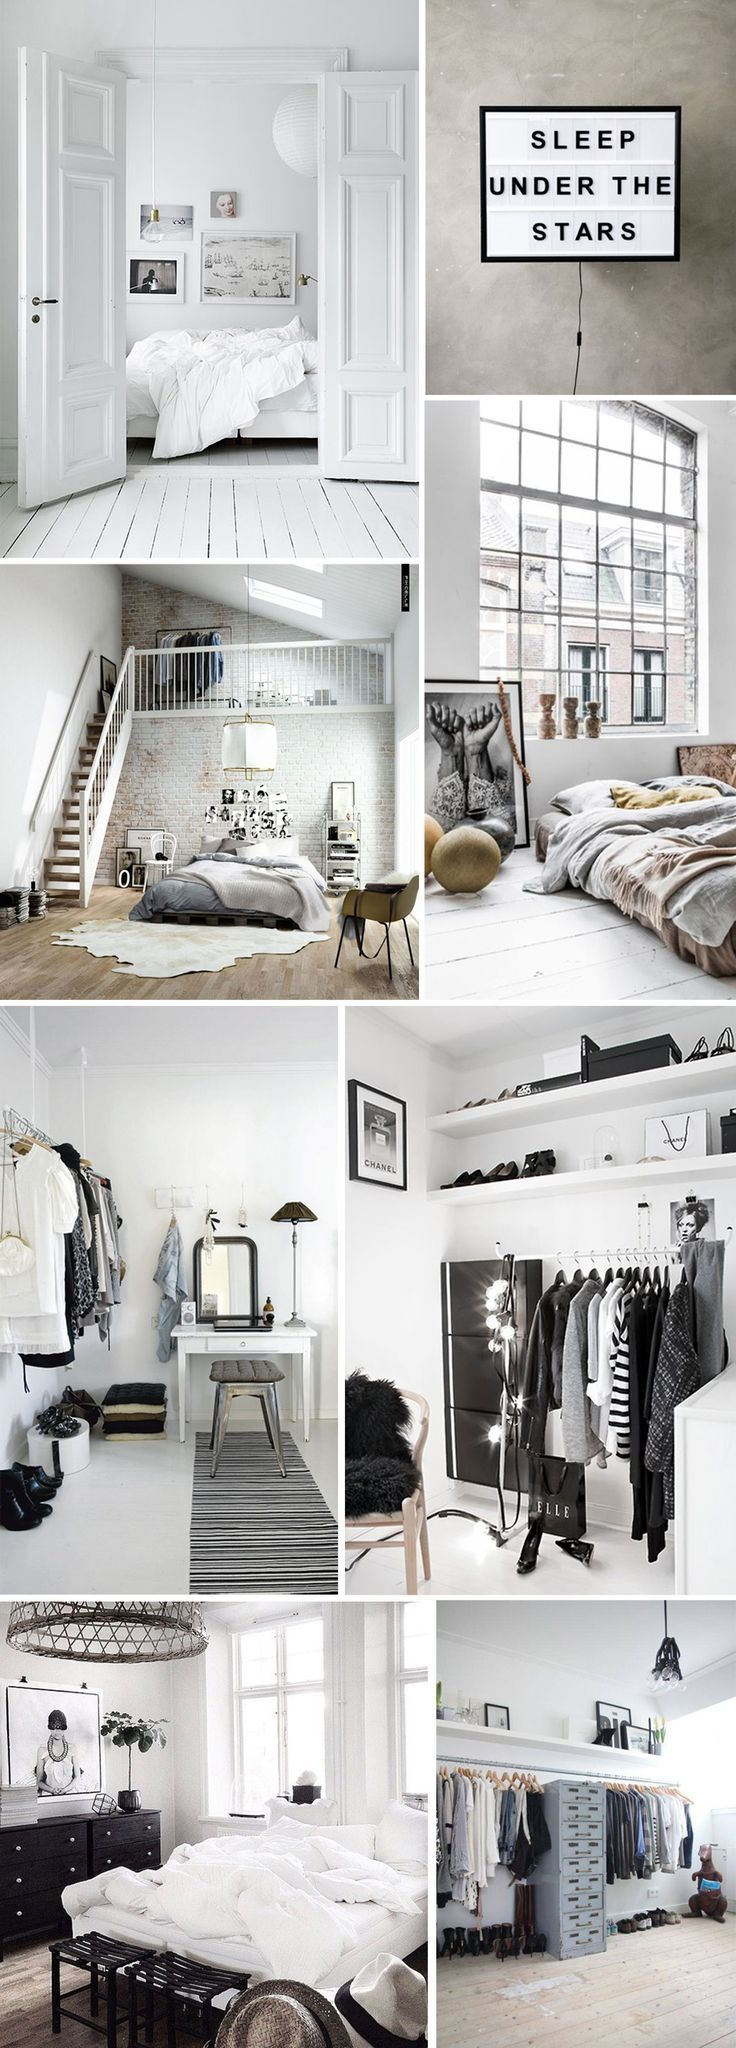 Bedroom inspiration christina dueholm bedrooms spaces and room